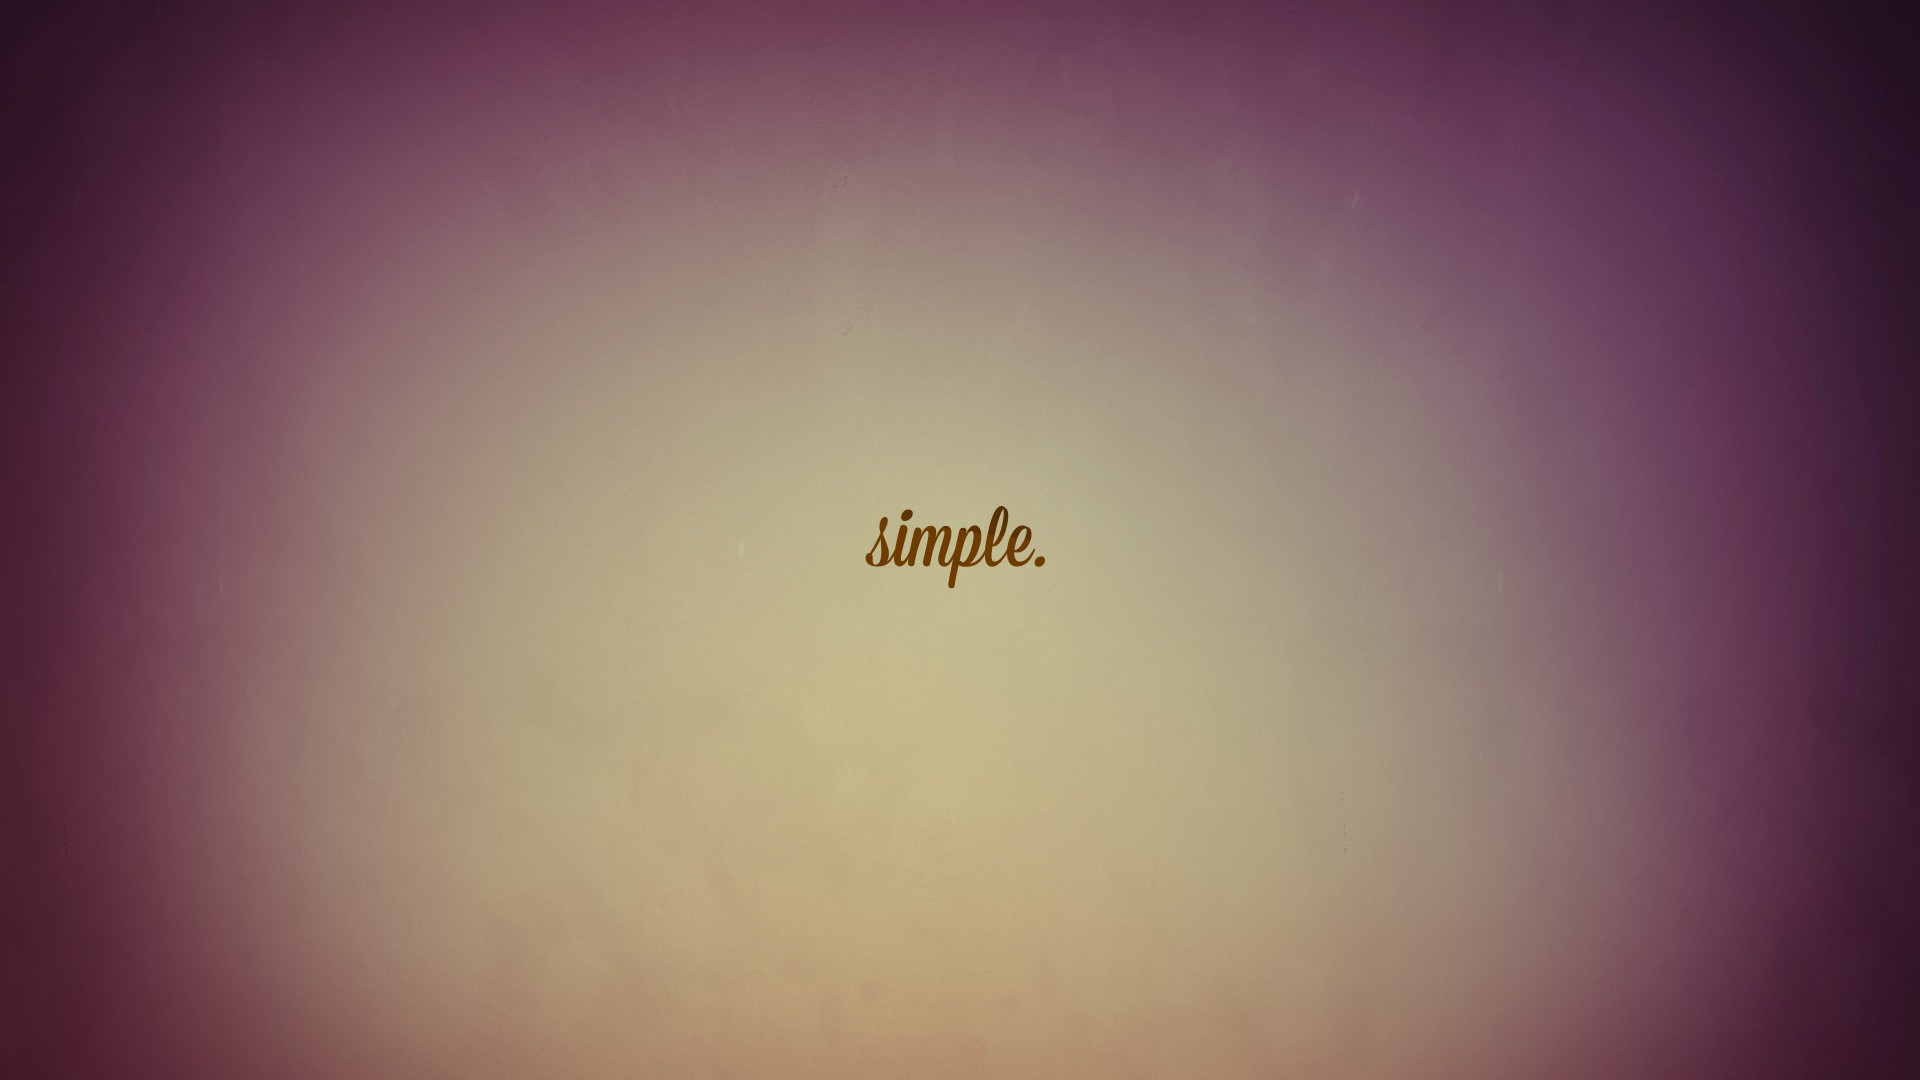 Simple Desktop 644084 Hd Wallpaper Backgrounds Download